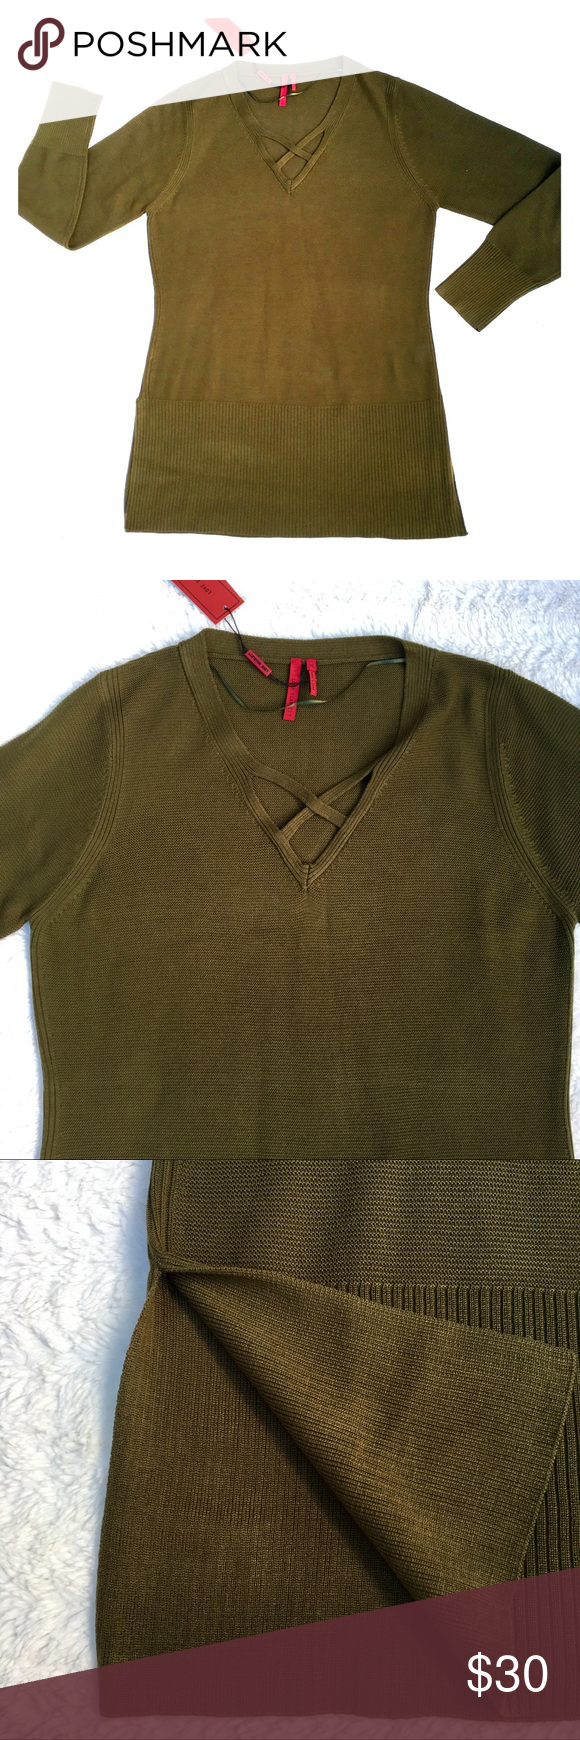 Love Scarlett Tunic Sweater NWT NWT | Green tunic, Tunic sweater ...